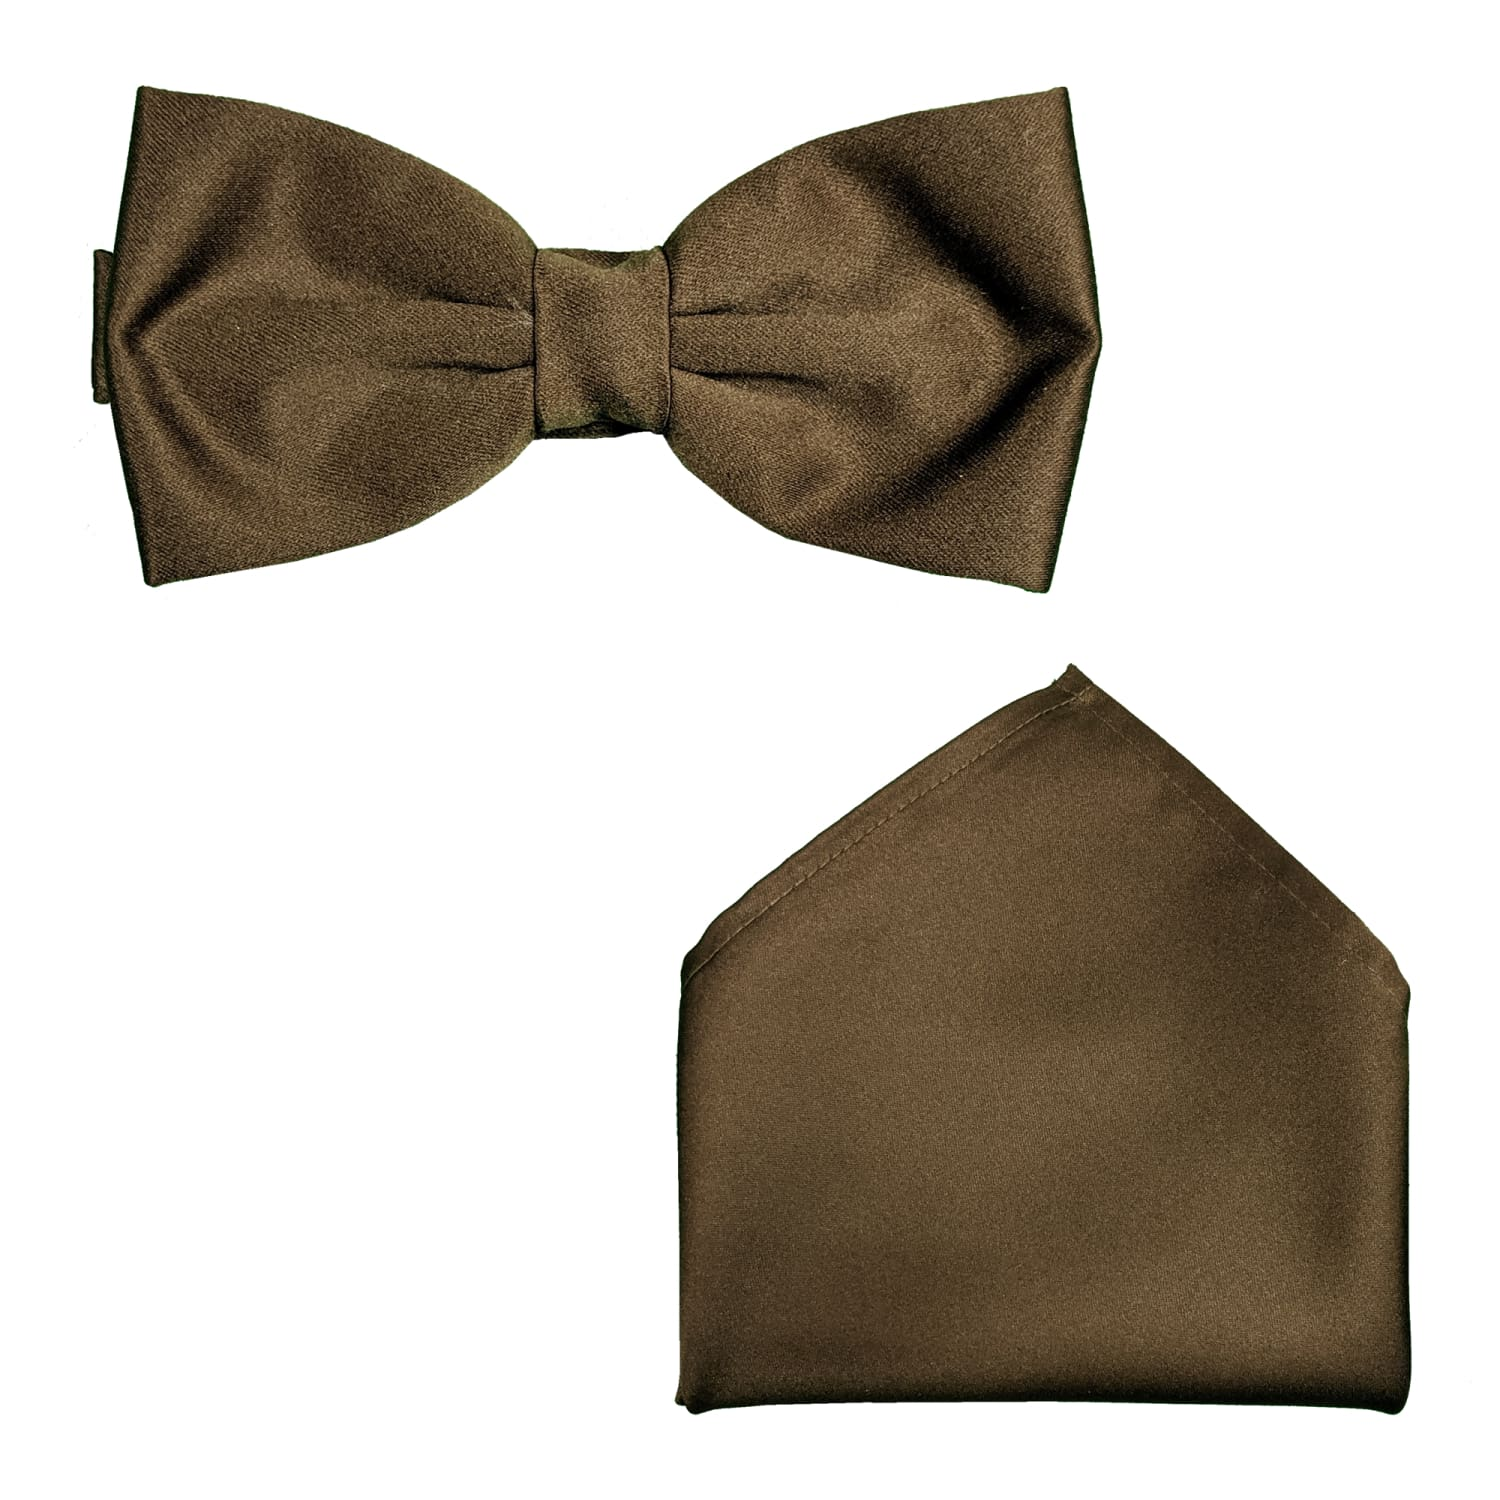 Folkespeare Bow Tie & Pocket Square Set - BK0030 - Chocolate 1